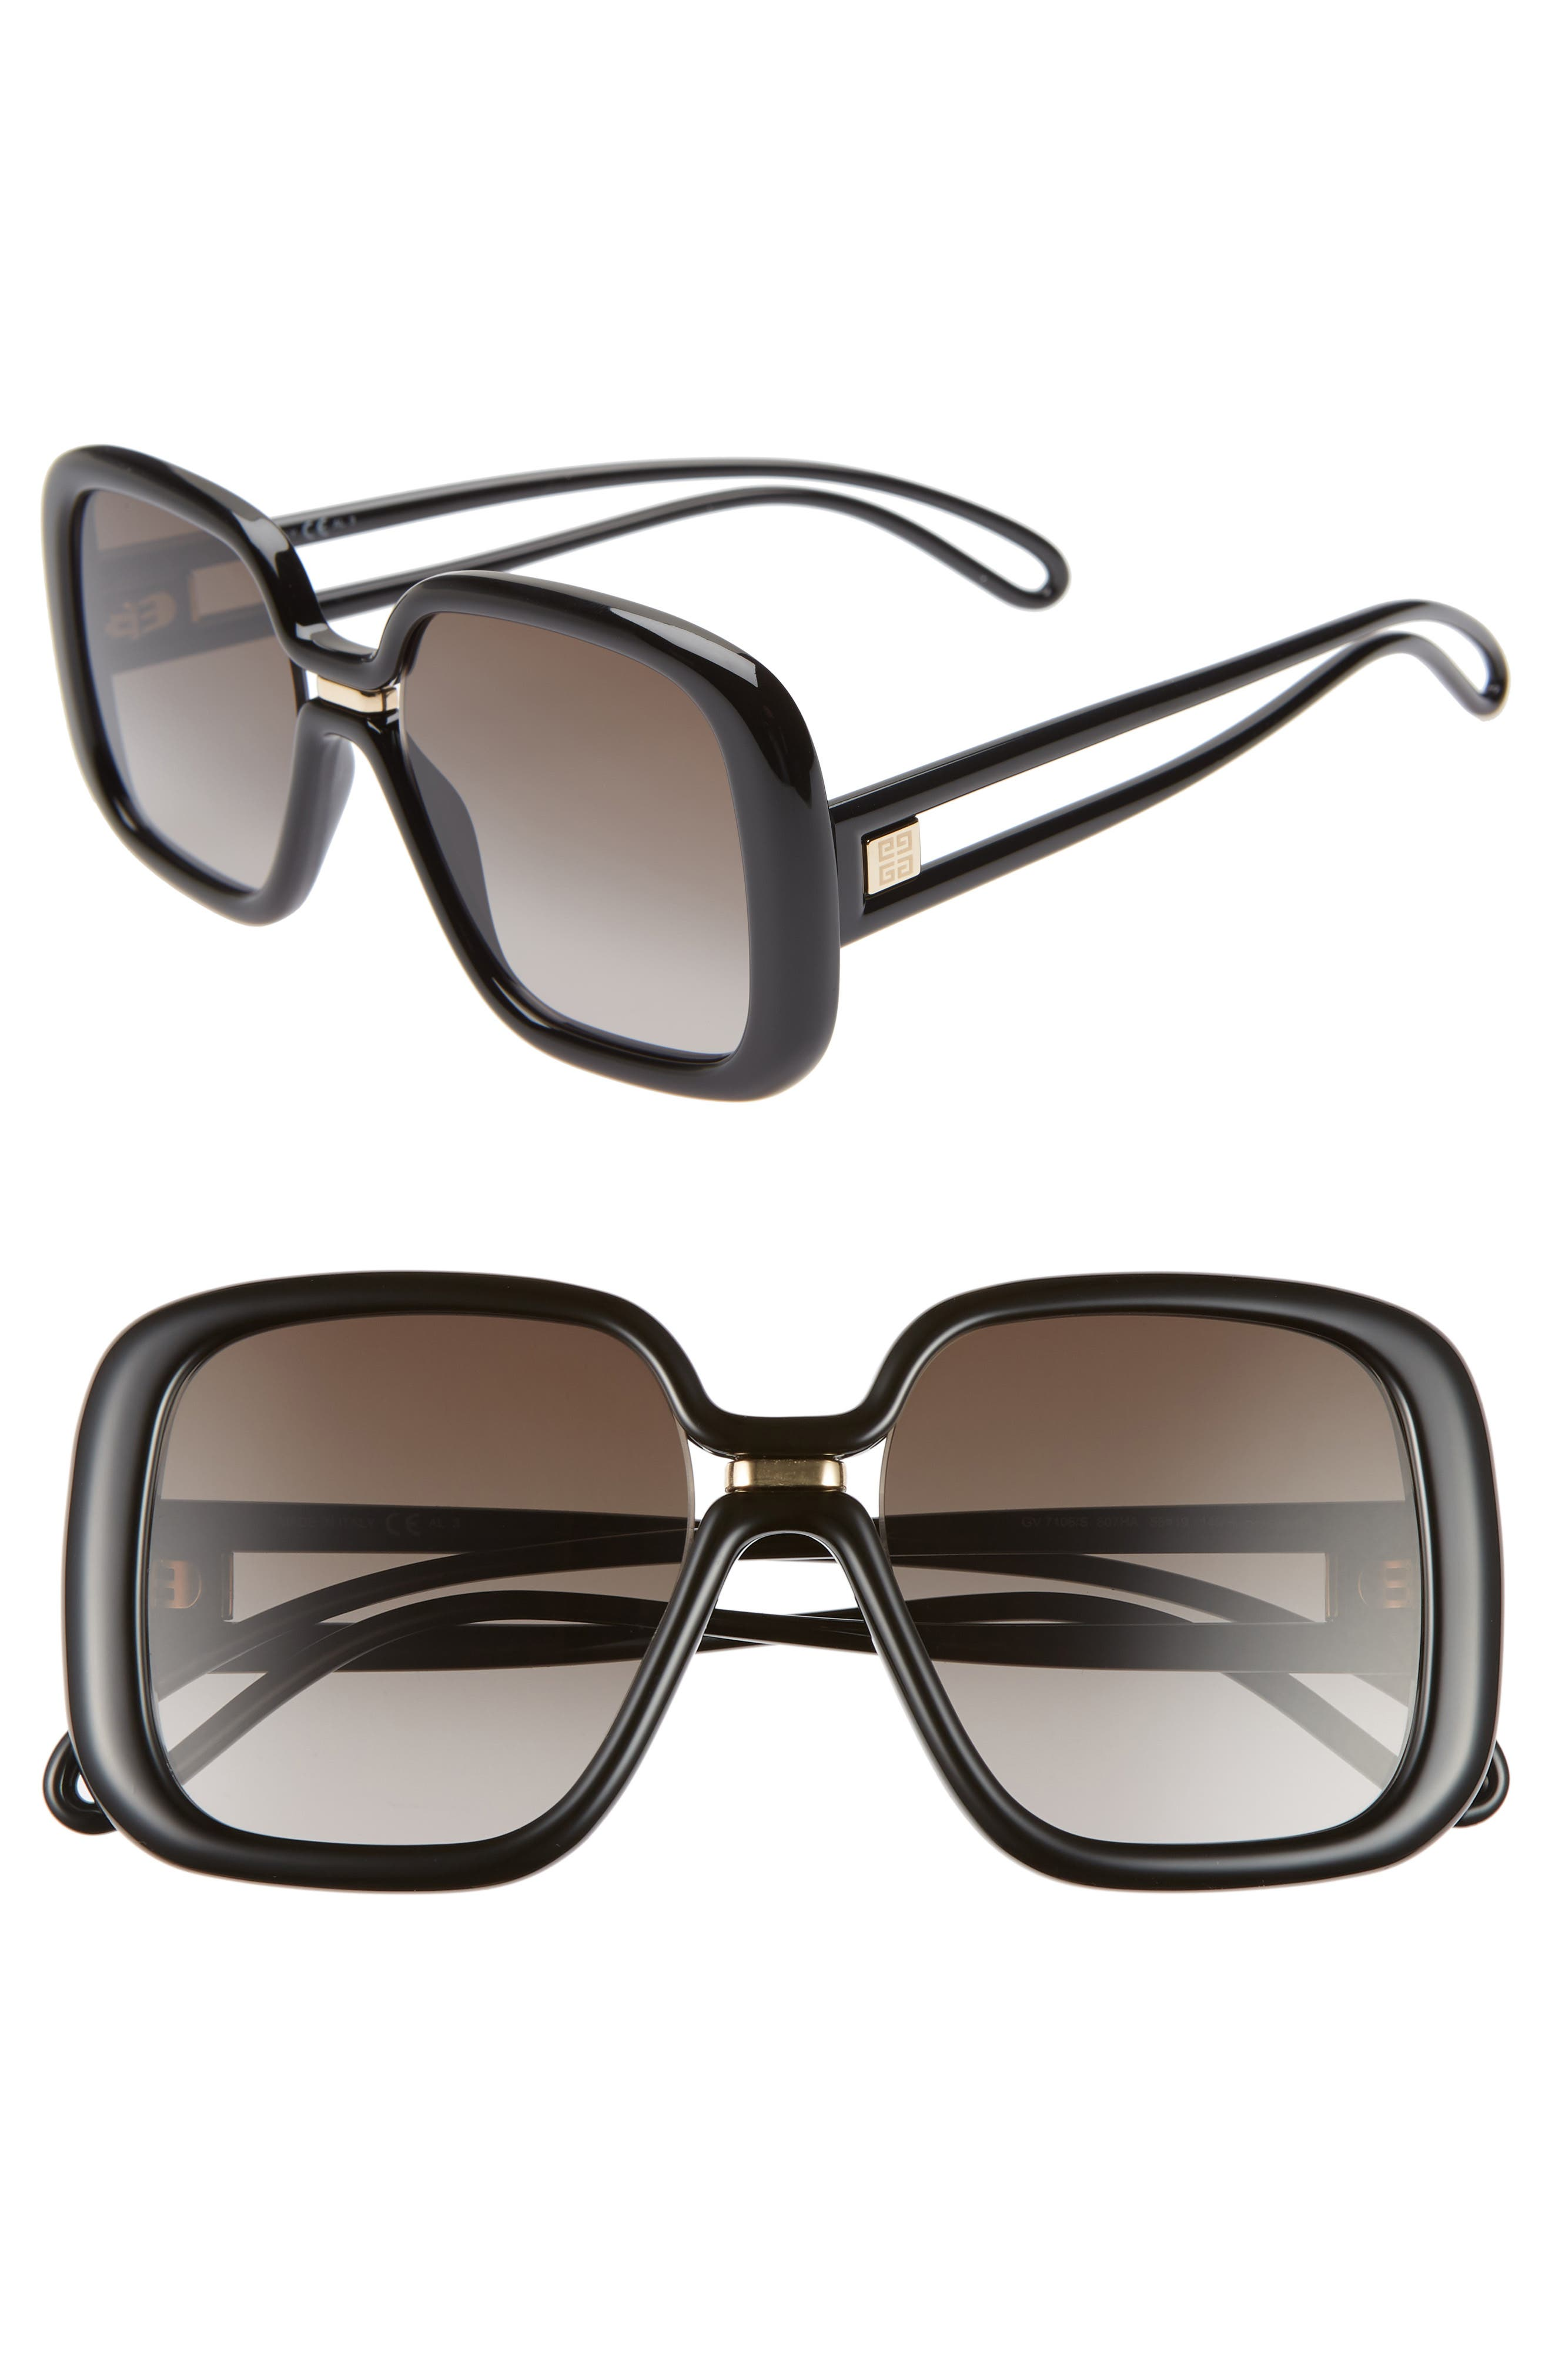 Givenchy 55Mm Square Sunglasses -